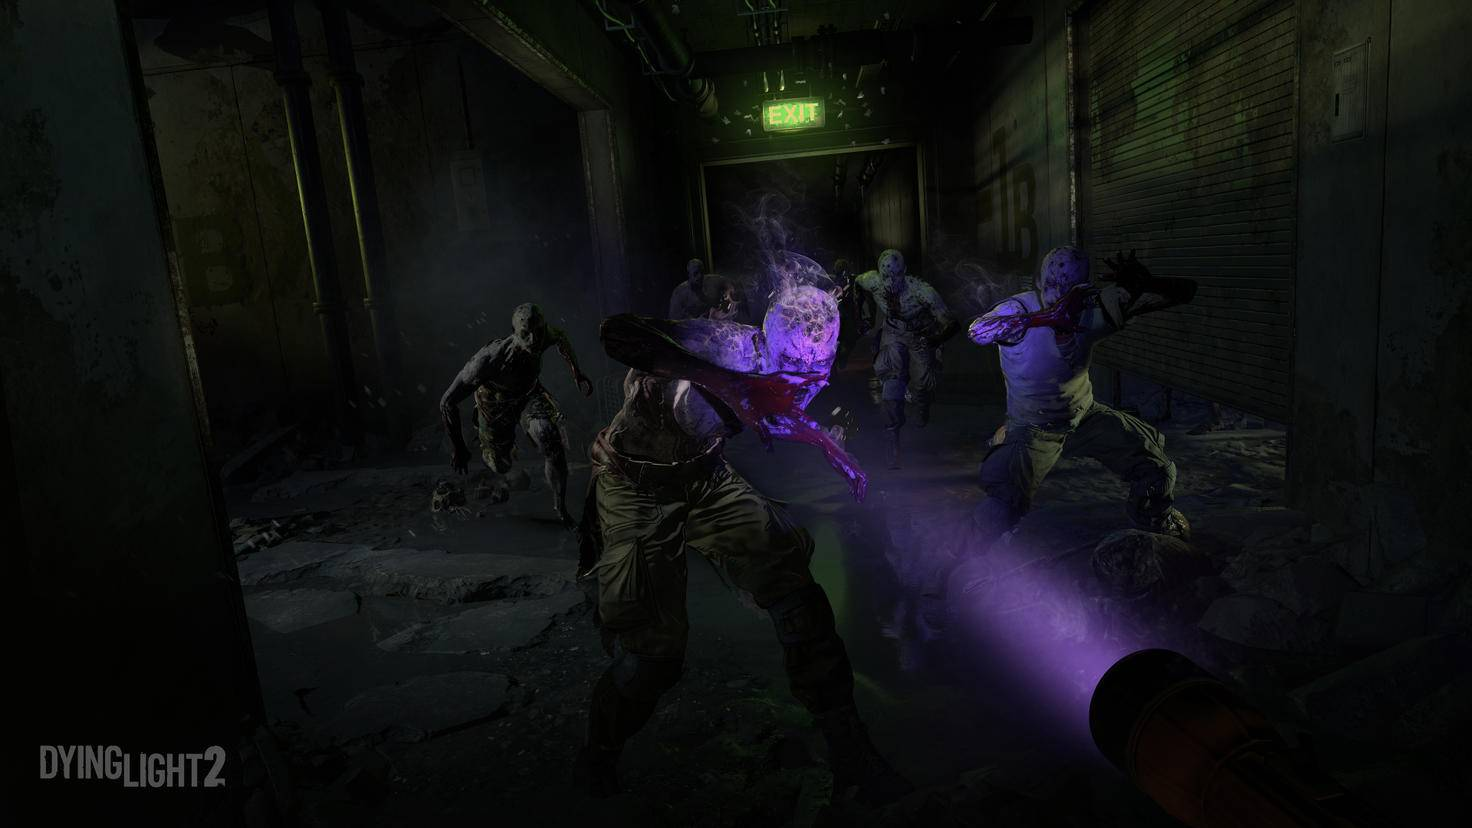 dying-light-2-zombie